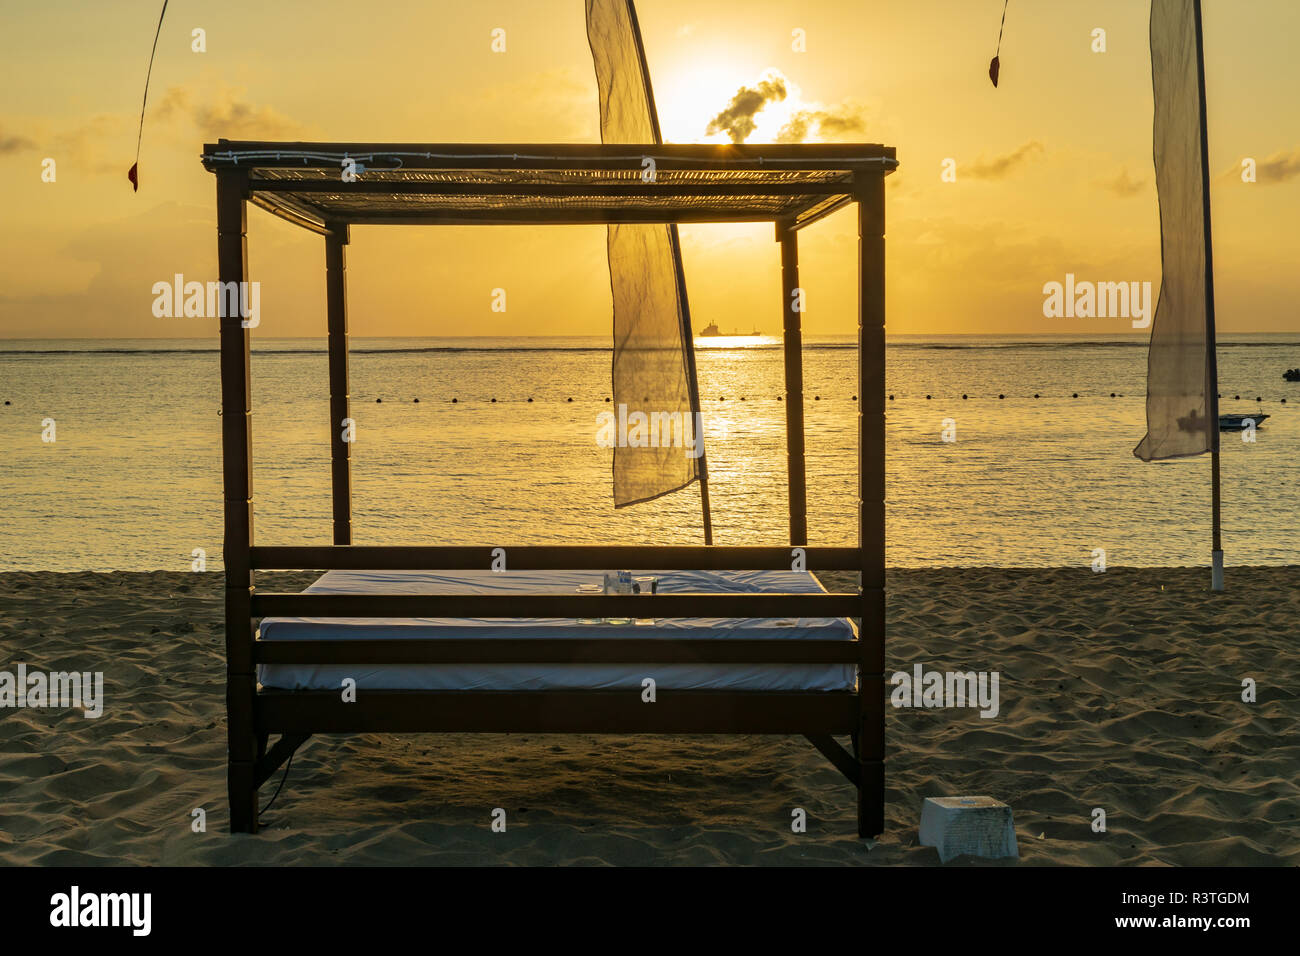 sunrise in Nusa Dua beach, a cot to sleep by the sea/ beach, with the rays of the rising sun to wake you up, beautiful Bali - Stock Image